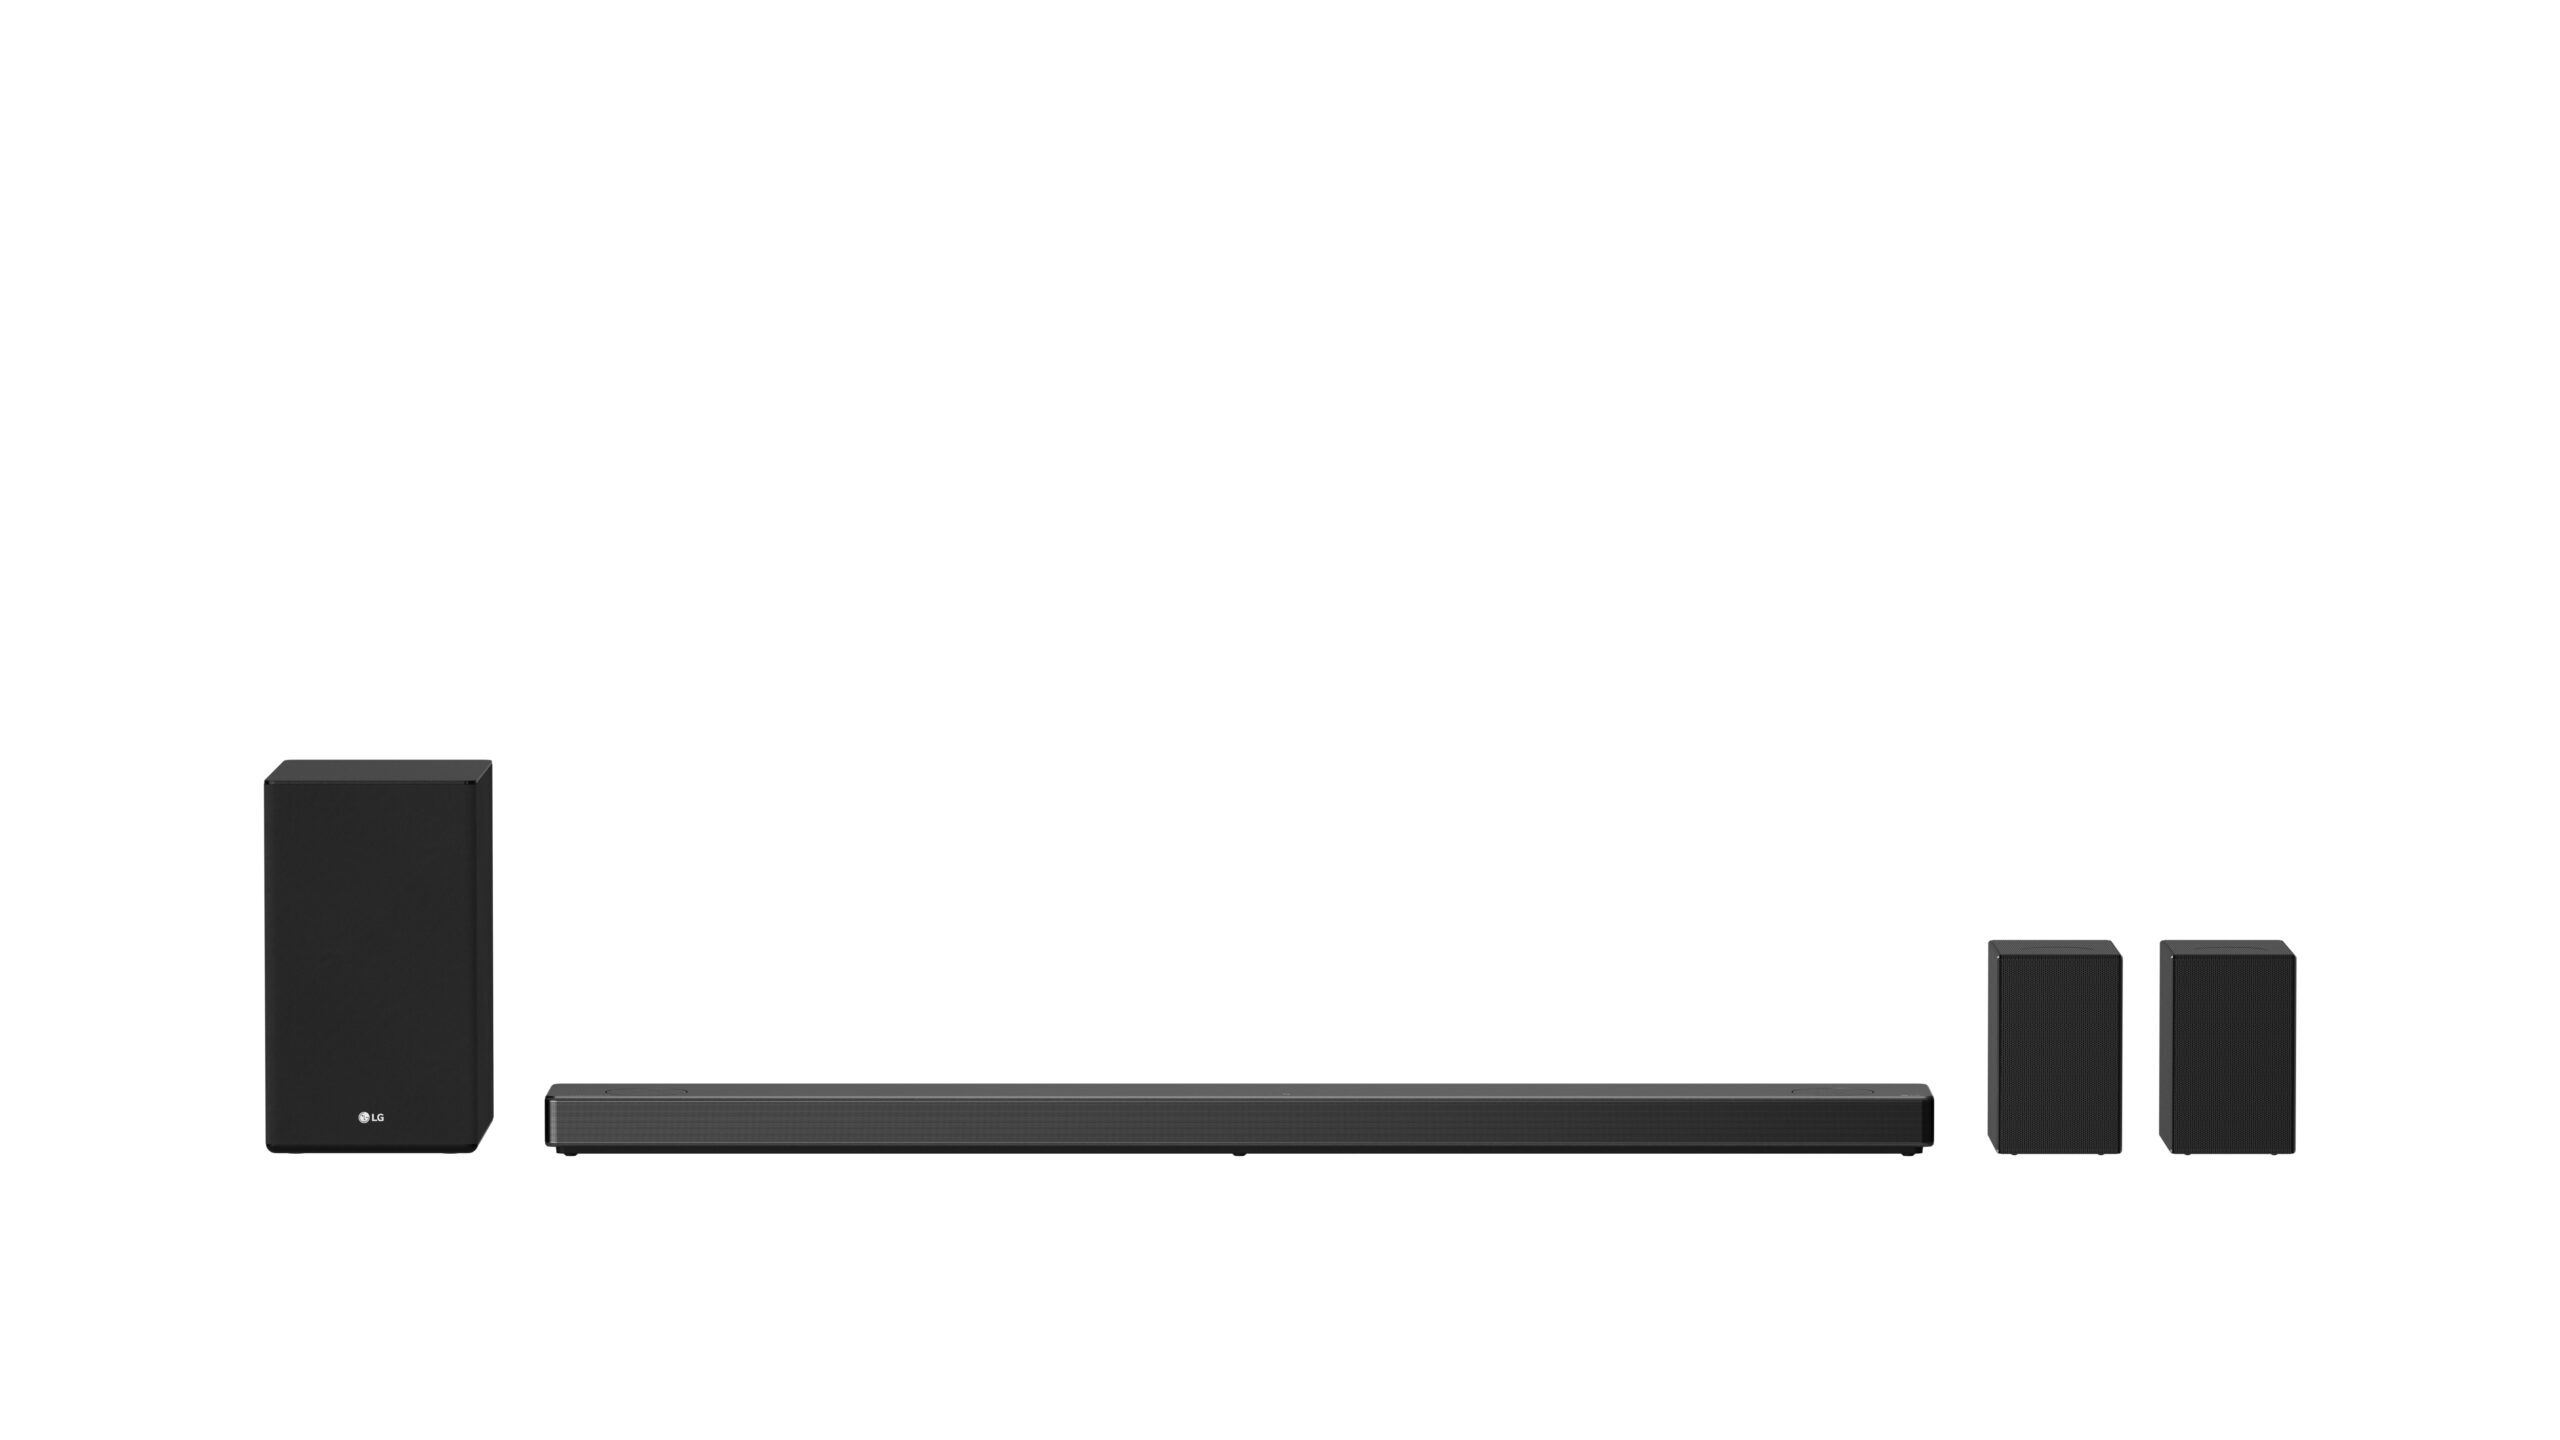 LG hits all the right notes with this Meridian-tuned 7.1.4 soundbar - it's loaded with features and delivers one of the most immersive listening experiences we've heard from a soundbar system.